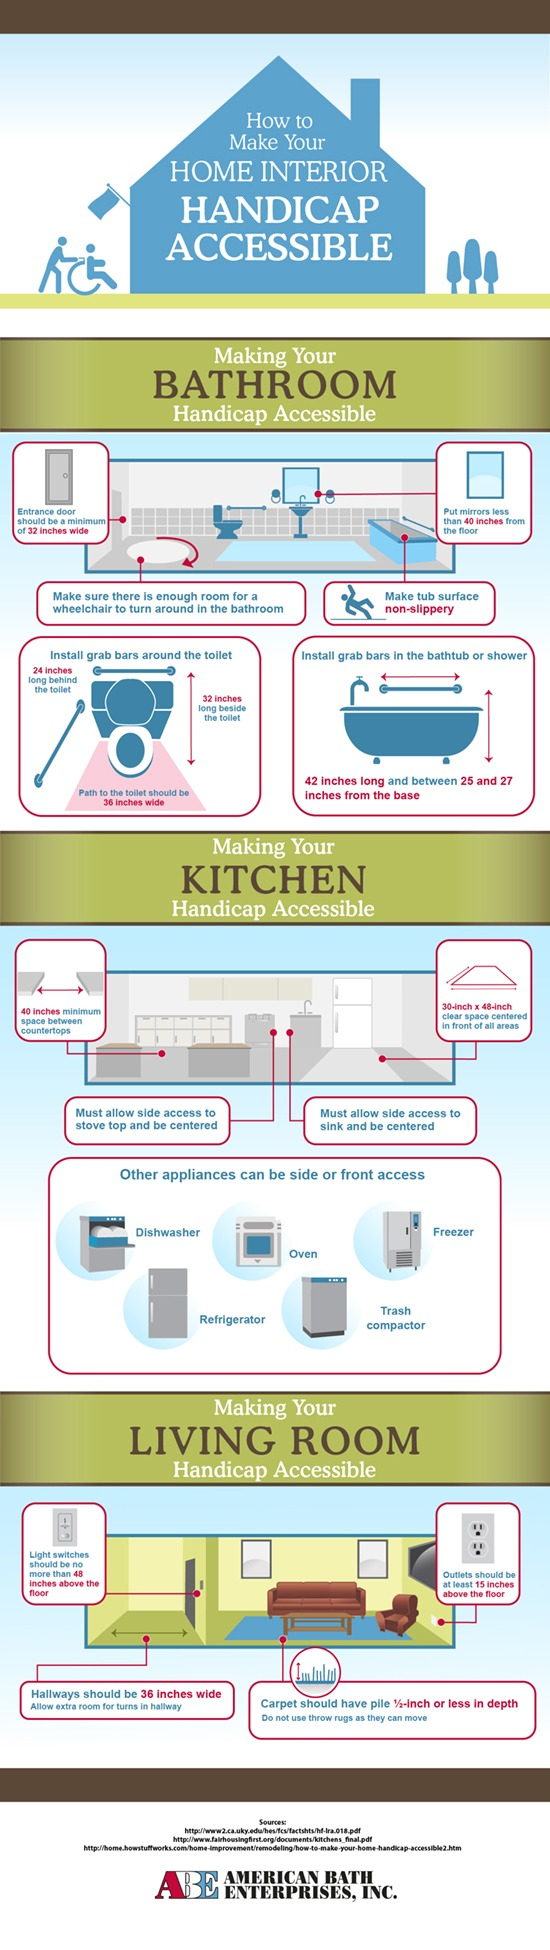 Bathroom Safety 101 Infographic